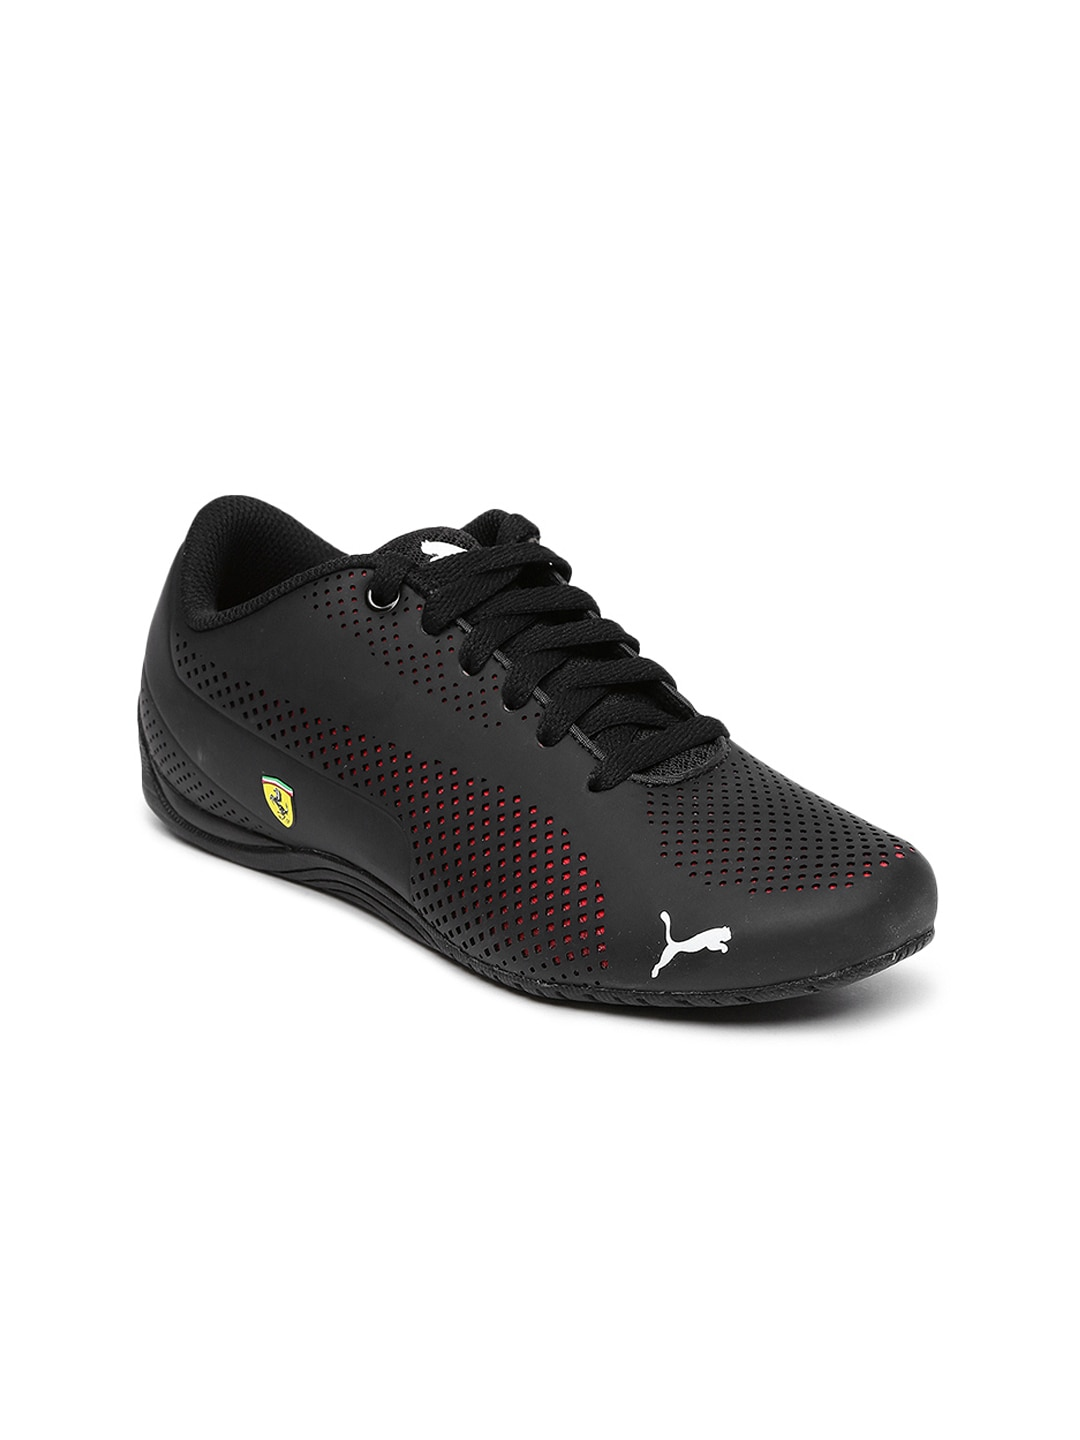 16ea9048b0c Puma Ferrari Black Tops Casual Shoes - Buy Puma Ferrari Black Tops Casual  Shoes online in India